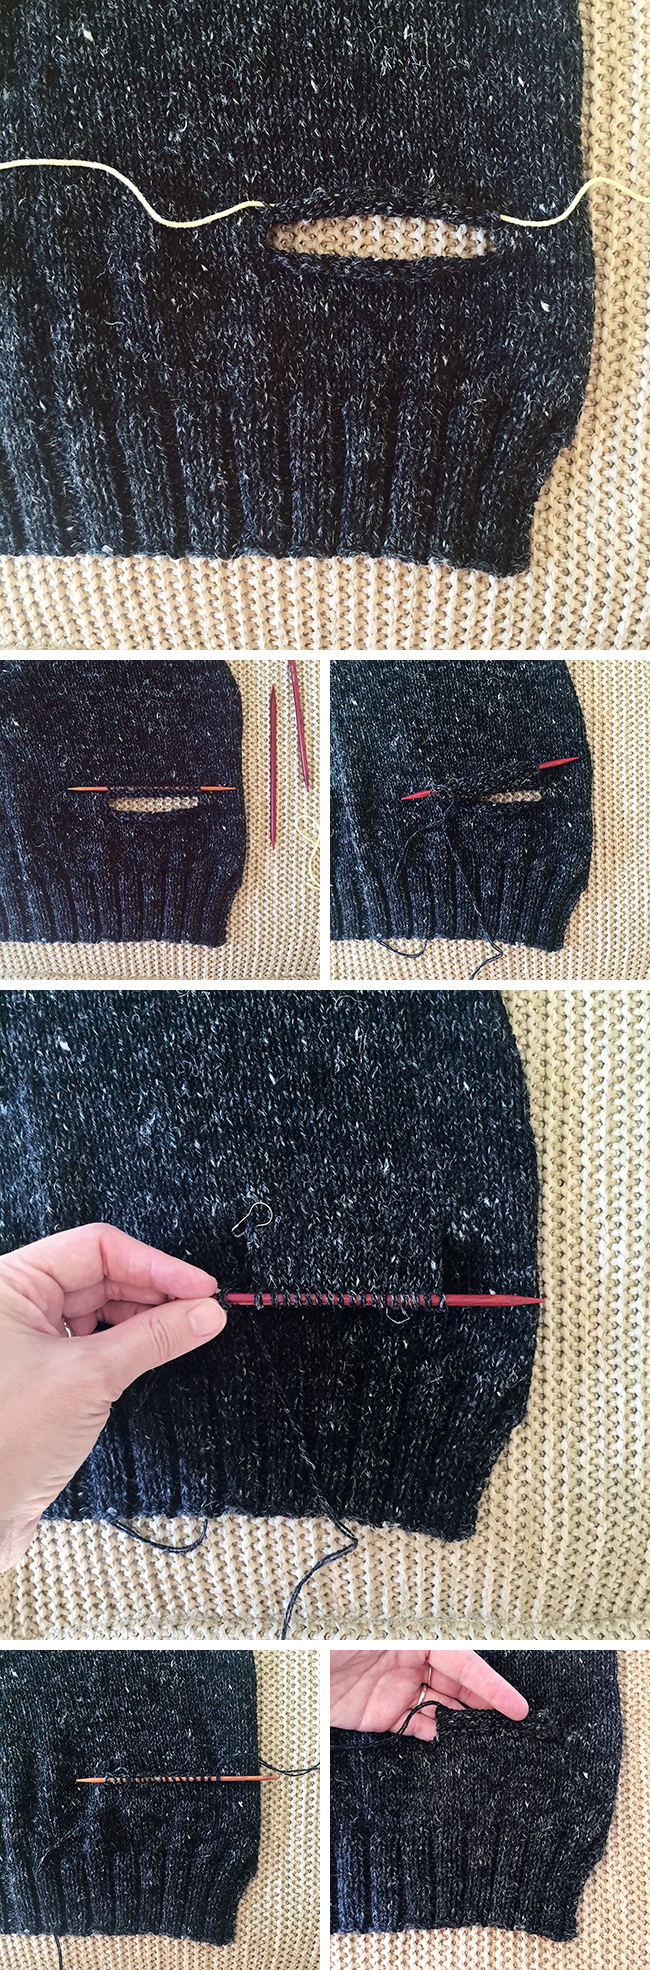 How to knit inset pockets (top down) Fringe Association